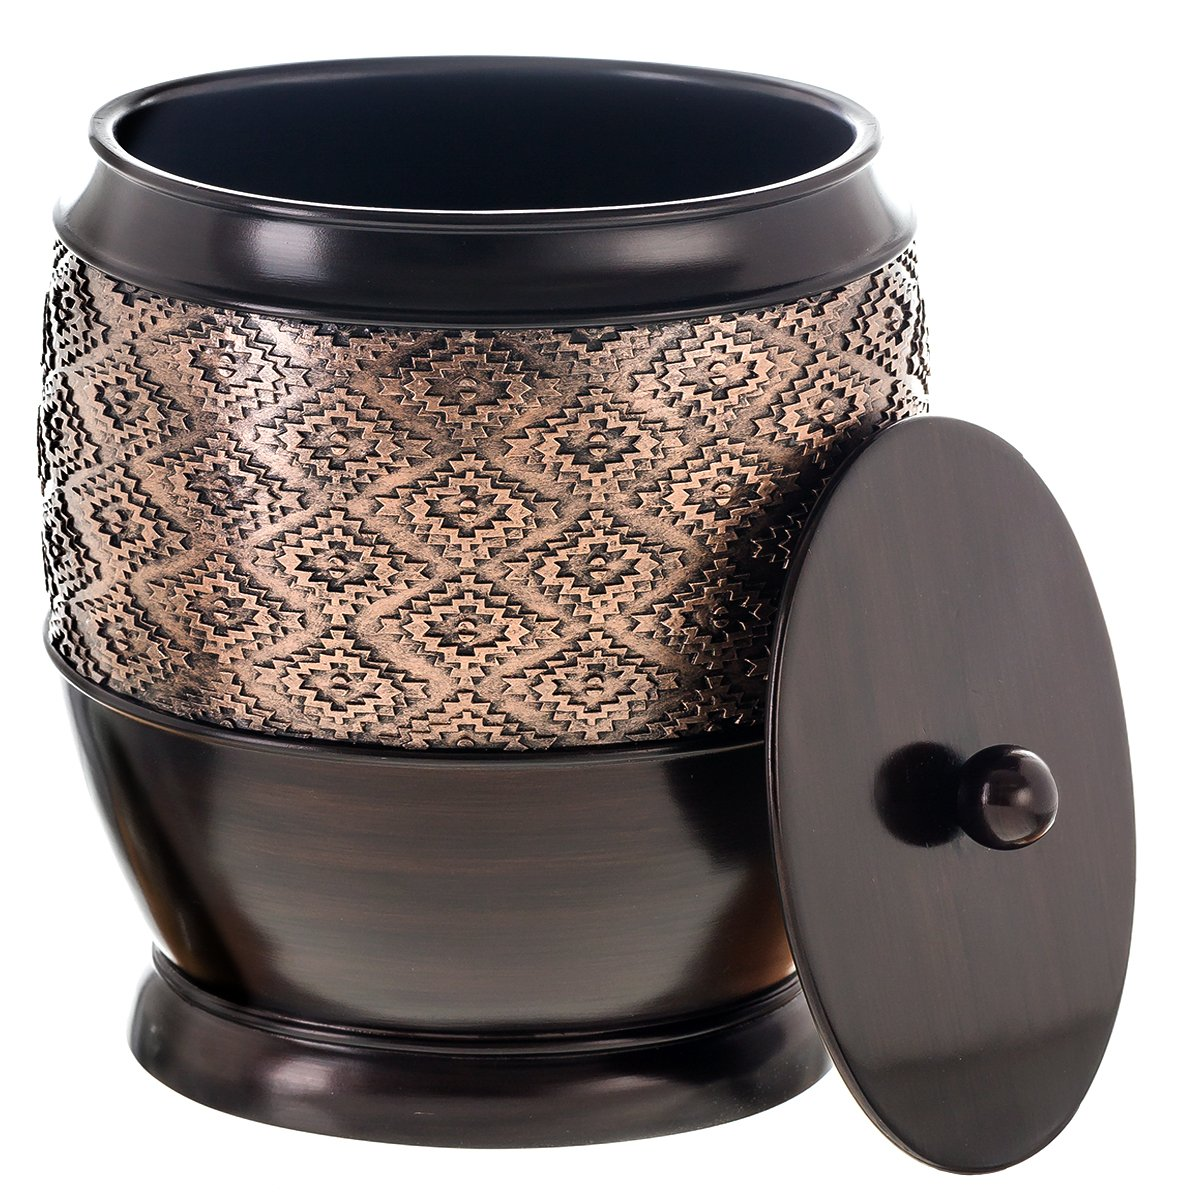 Dublin Small Trash Can with Lid - Decorative Waste Basket, Durable Resin Slim Bathroom Covered Garbage Can Wastebasket Bin for Diaper/Paper (Brown) by Creative Scents